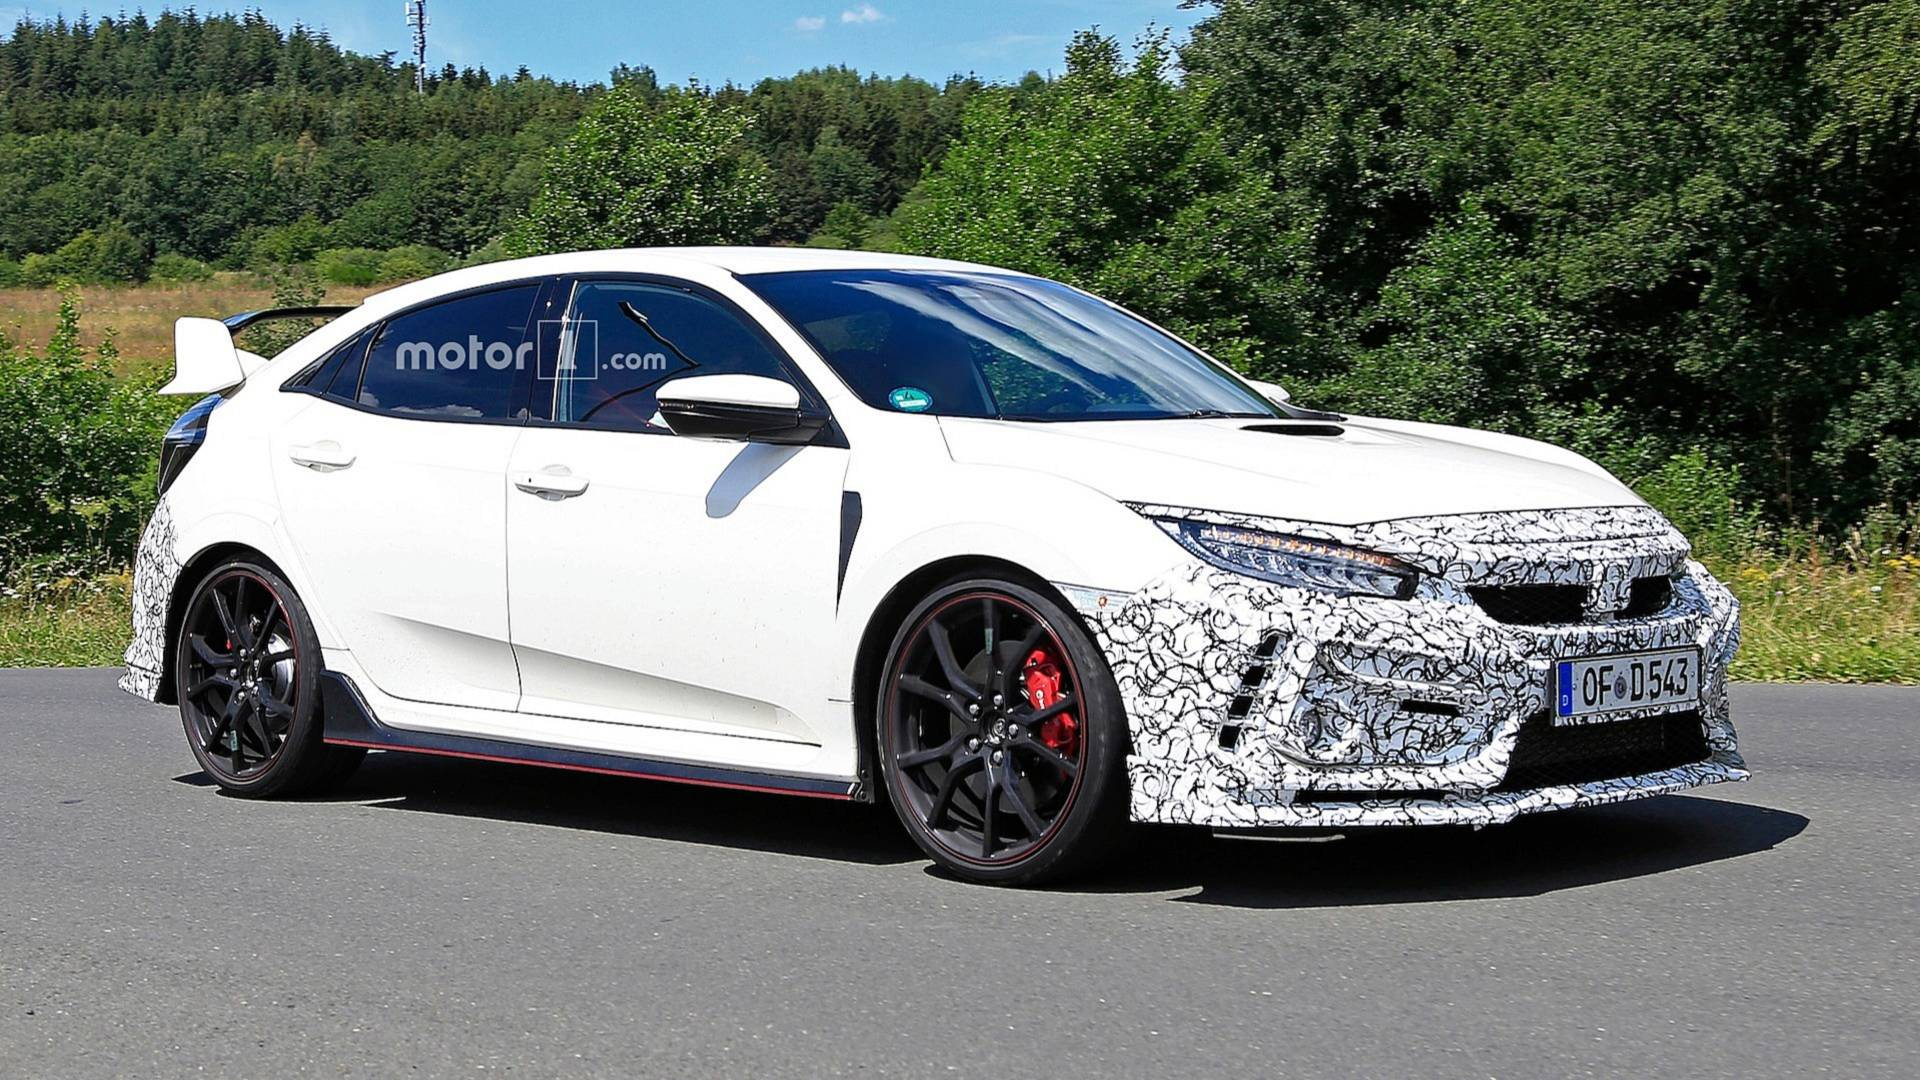 honda civic 2019 type r spy shots (5)